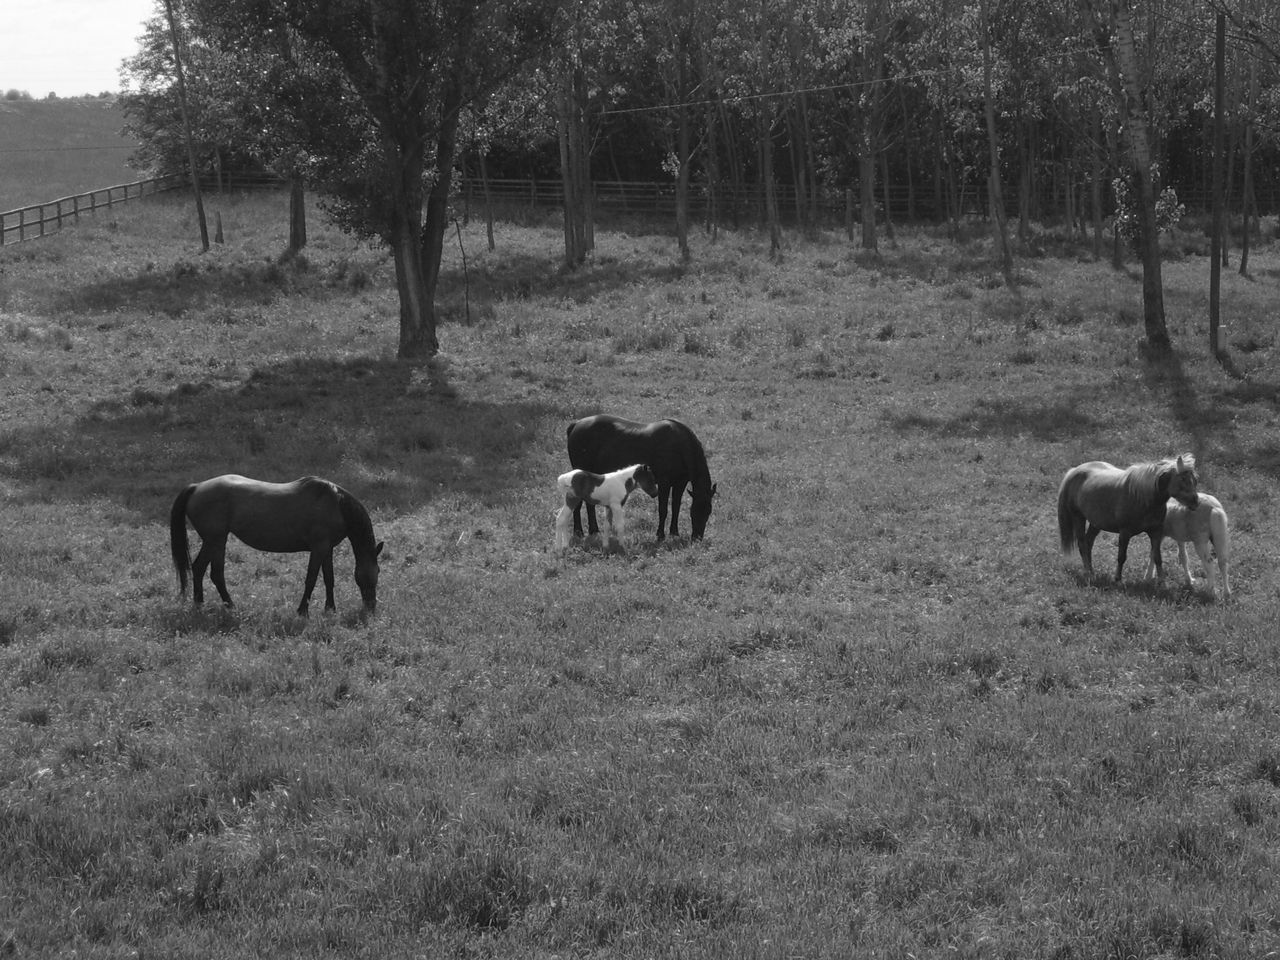 tree, animal themes, mammal, domestic animals, field, livestock, horse, grazing, nature, day, landscape, no people, outdoors, grass, tranquil scene, tranquility, full length, young animal, beauty in nature